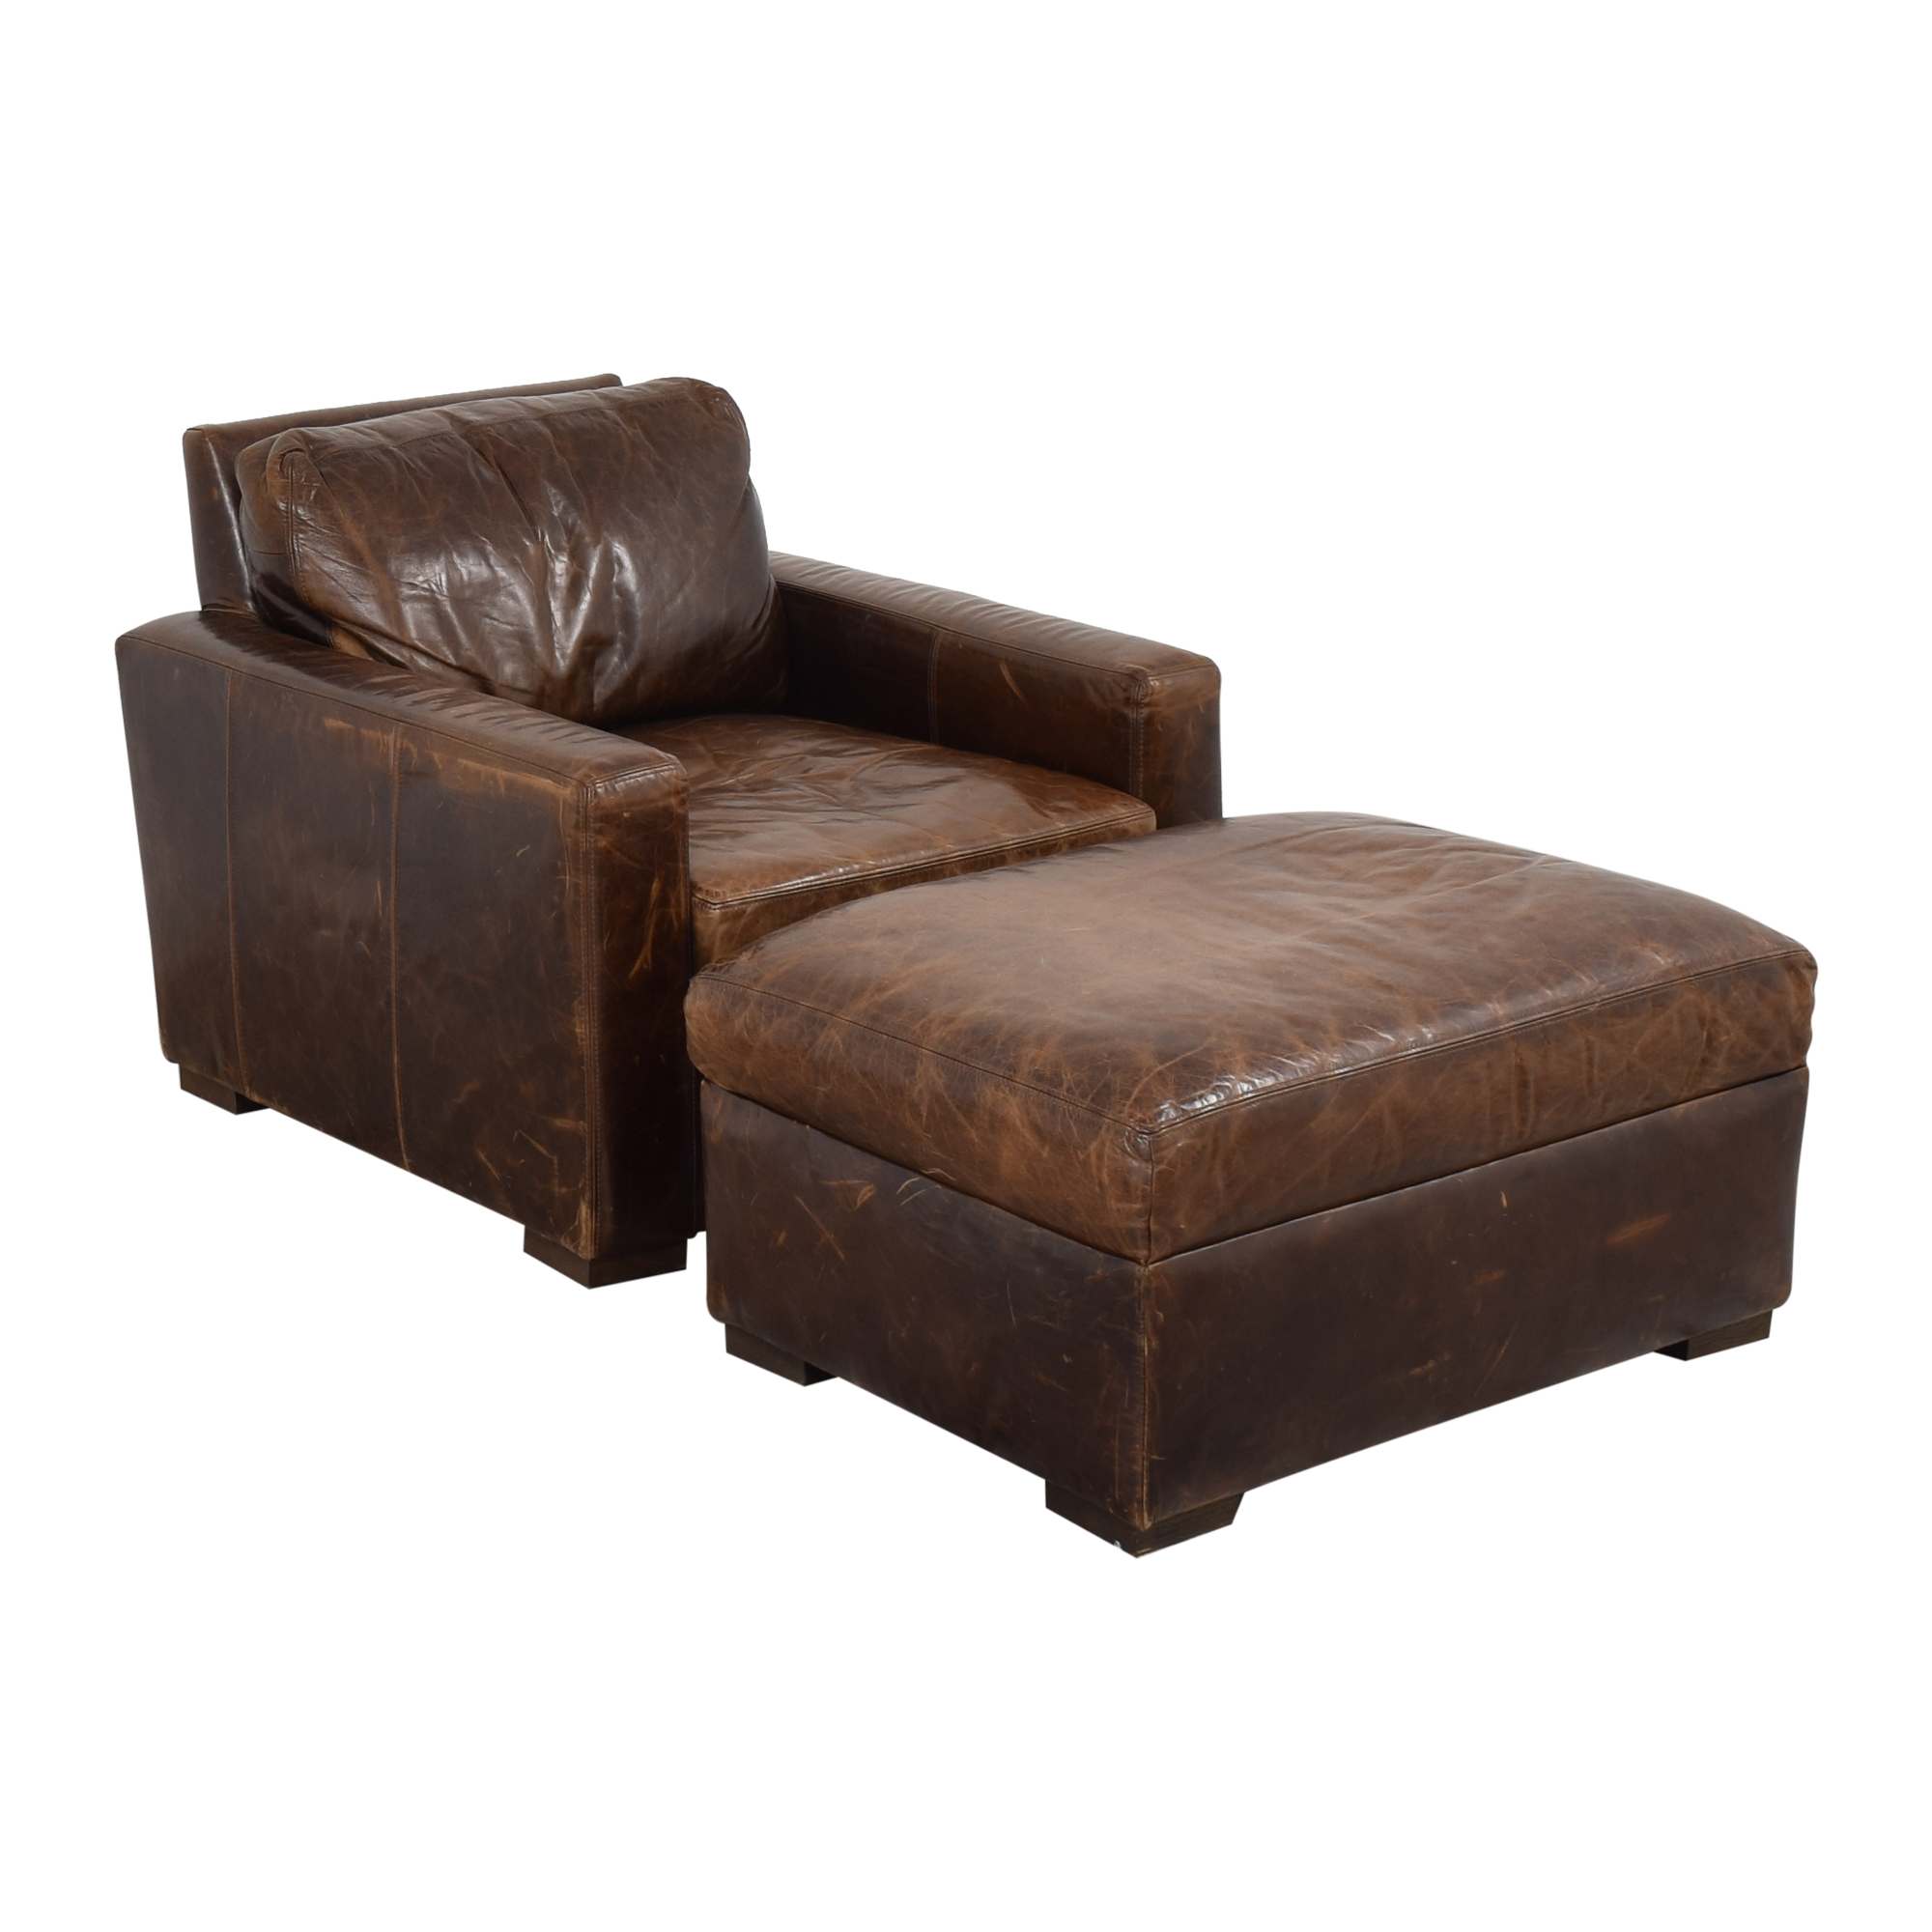 Restoration Hardware Restoration Hardware Petite Maxwell Chair and Ottoman price